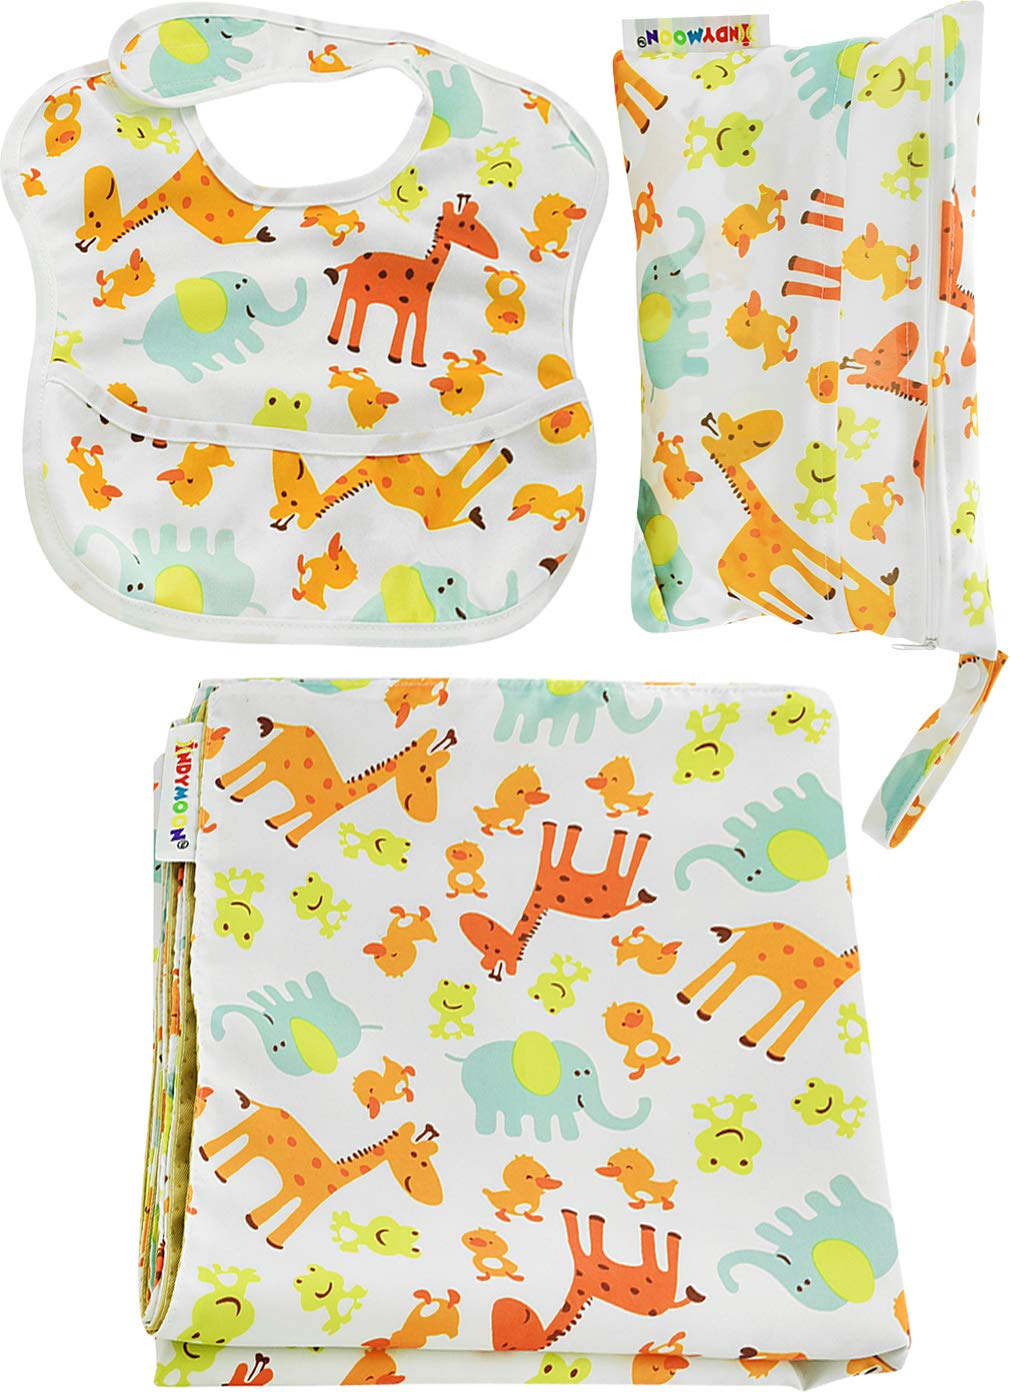 3pc. Splat Mat Set with Bib and Wet/Dry Bag  for Under High Chair  Splats  Arts & Crafts  Playtime. Large 51 Anti- Slip Mat, Machine Washable, Waterproof & Stain Resistant by IndyMoon GCI Creations